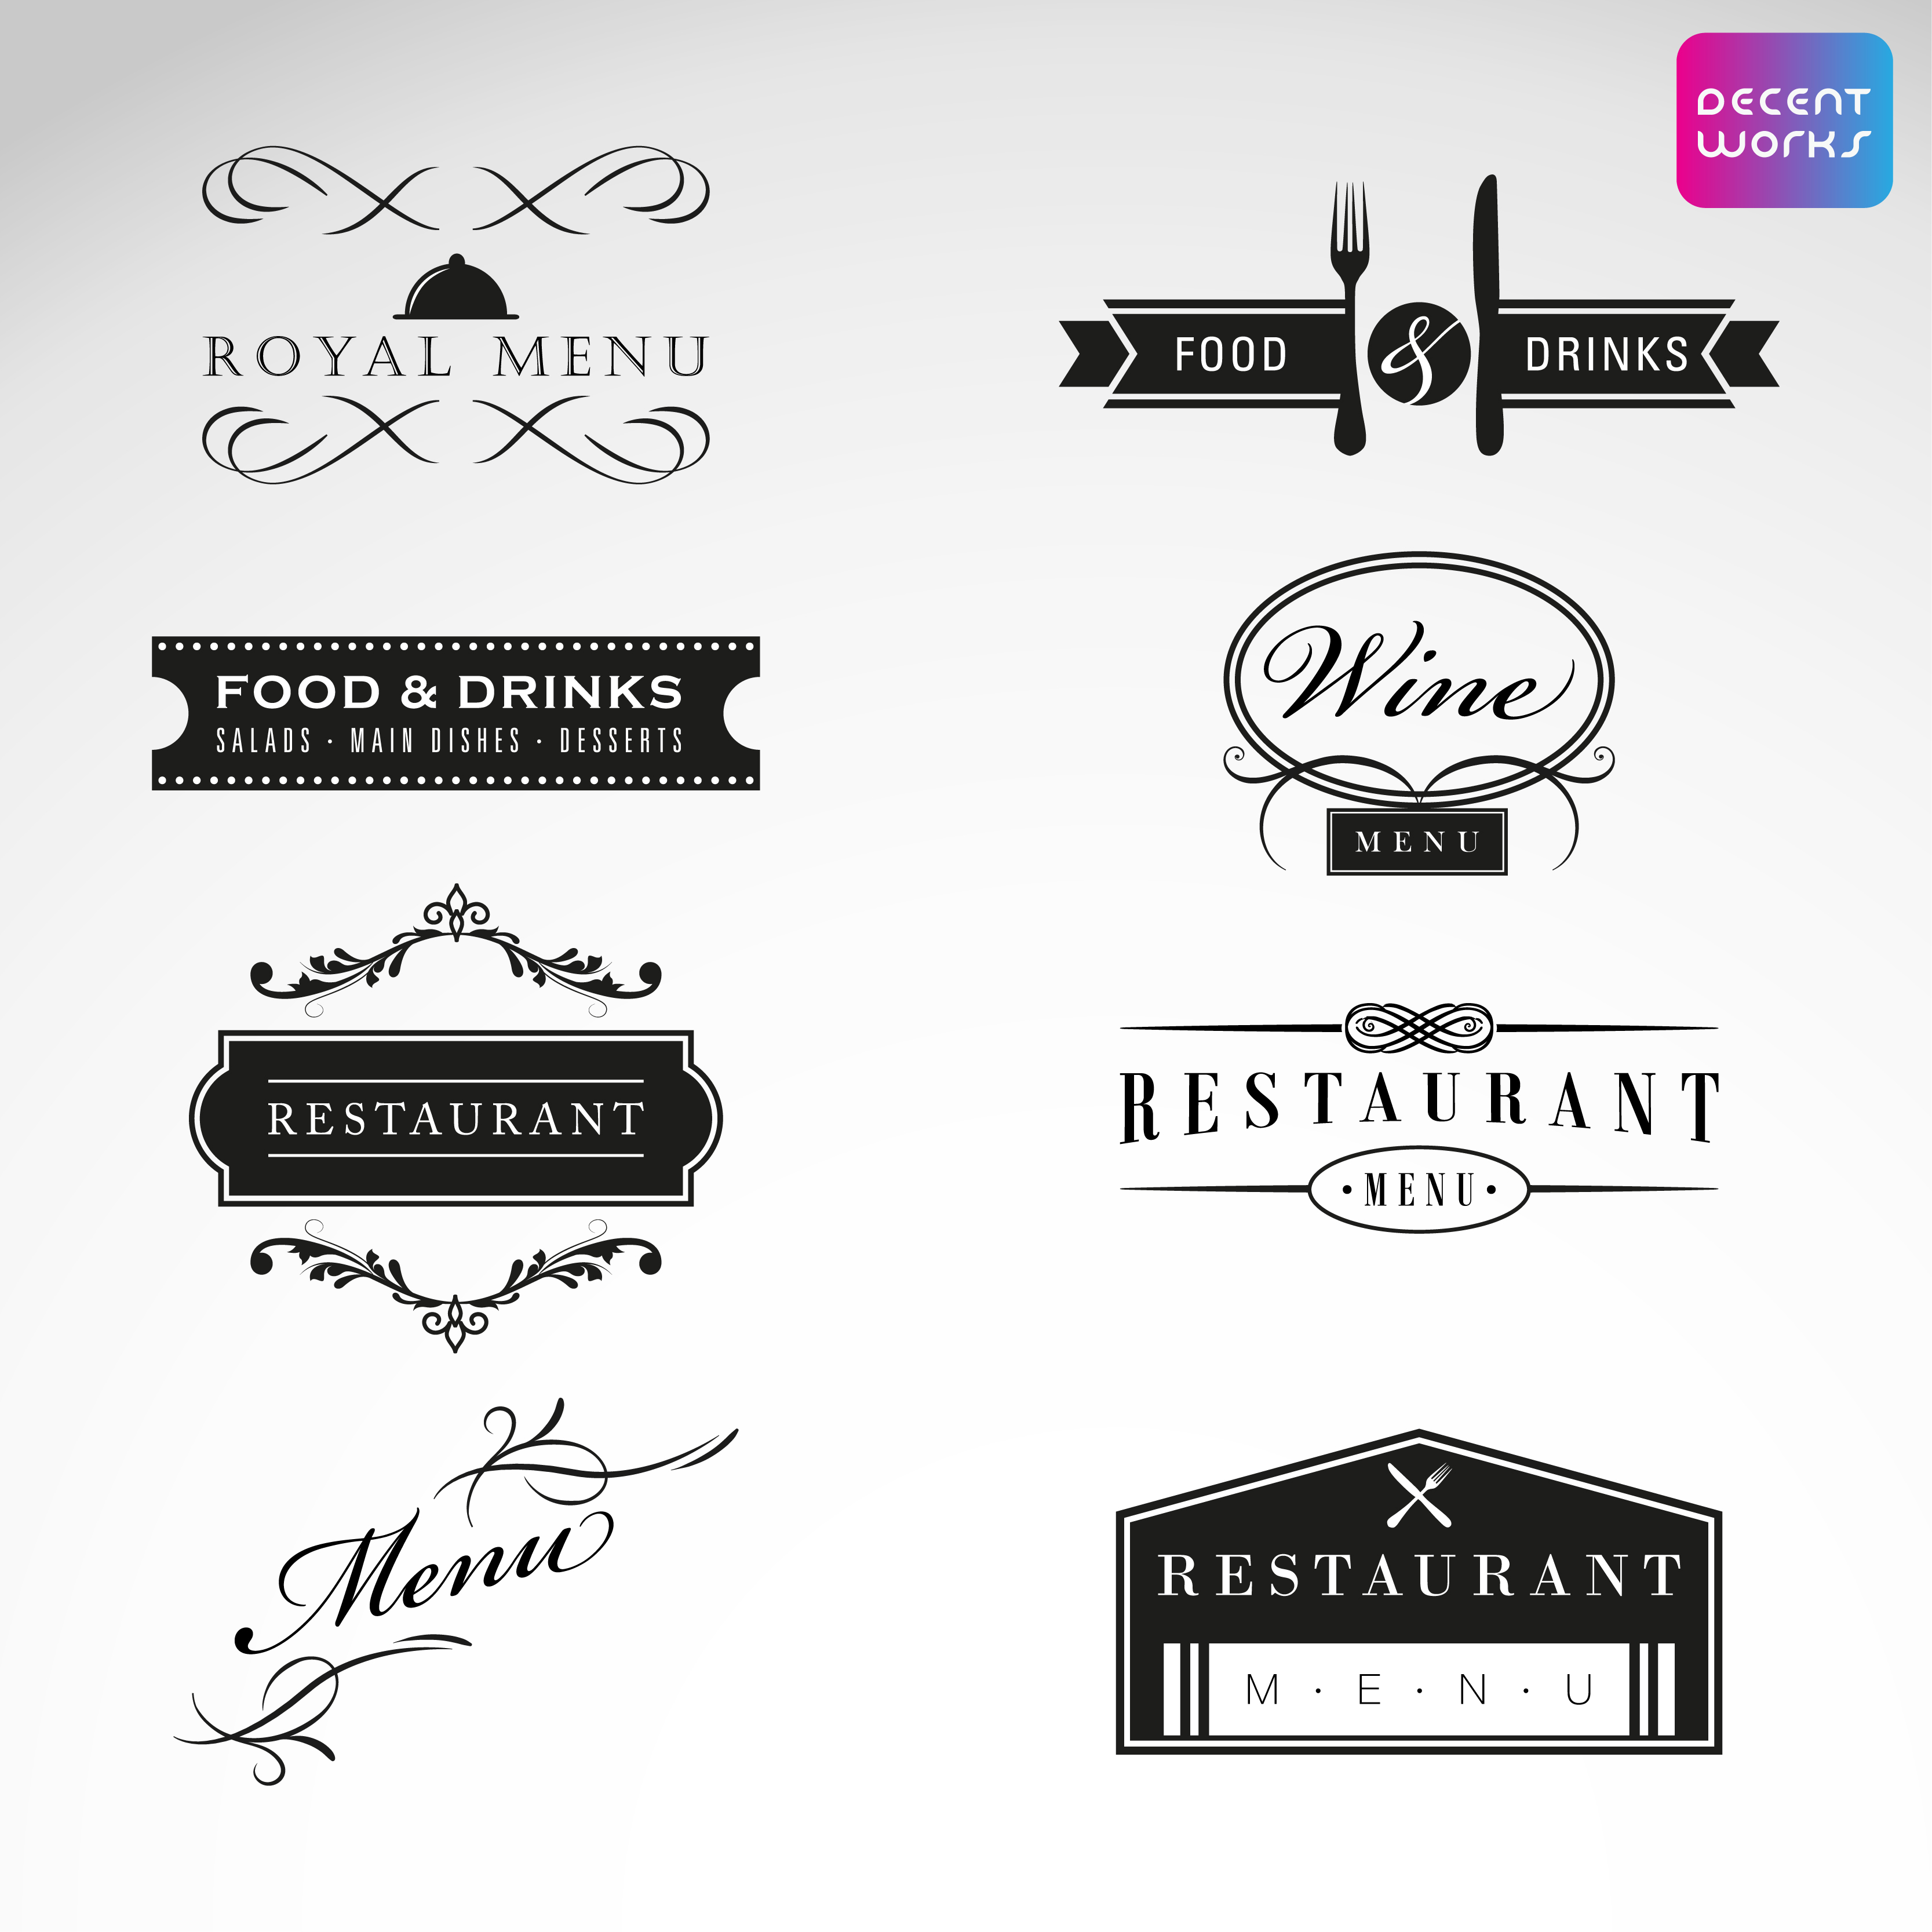 4 logo with business card high quality transparent background in